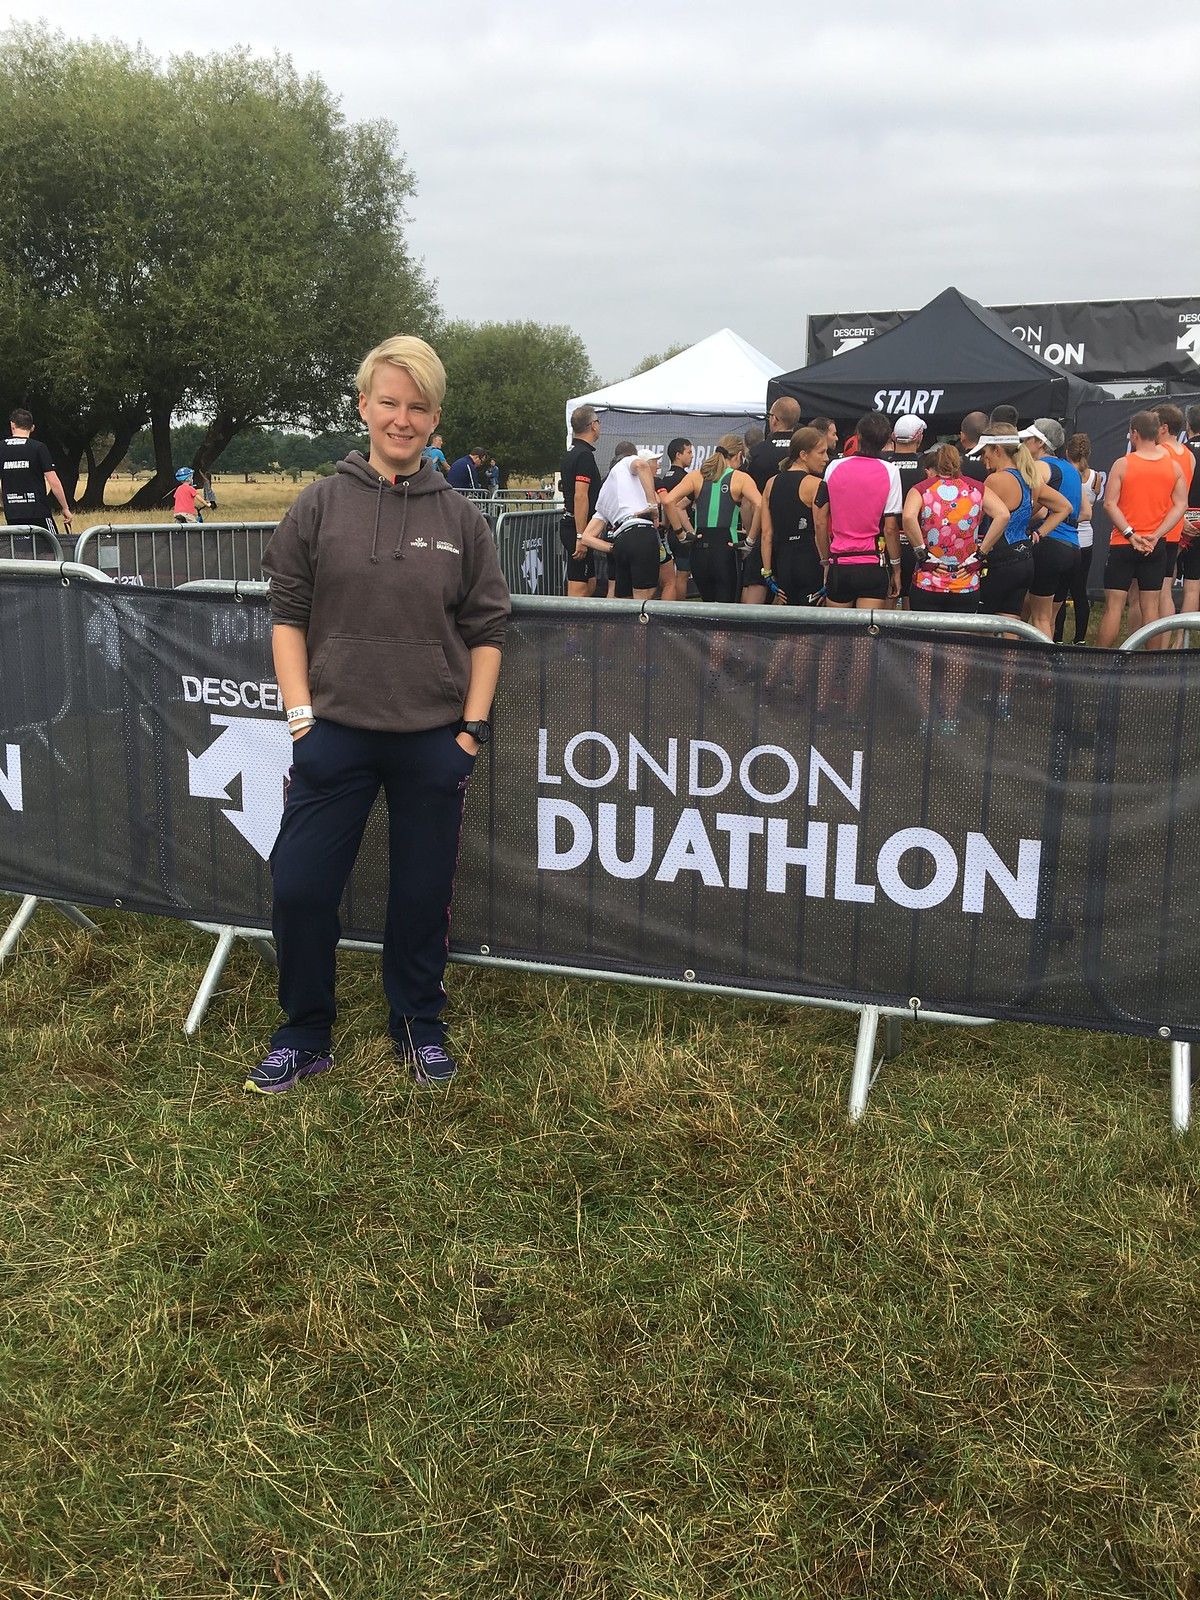 London Duathlon 2016